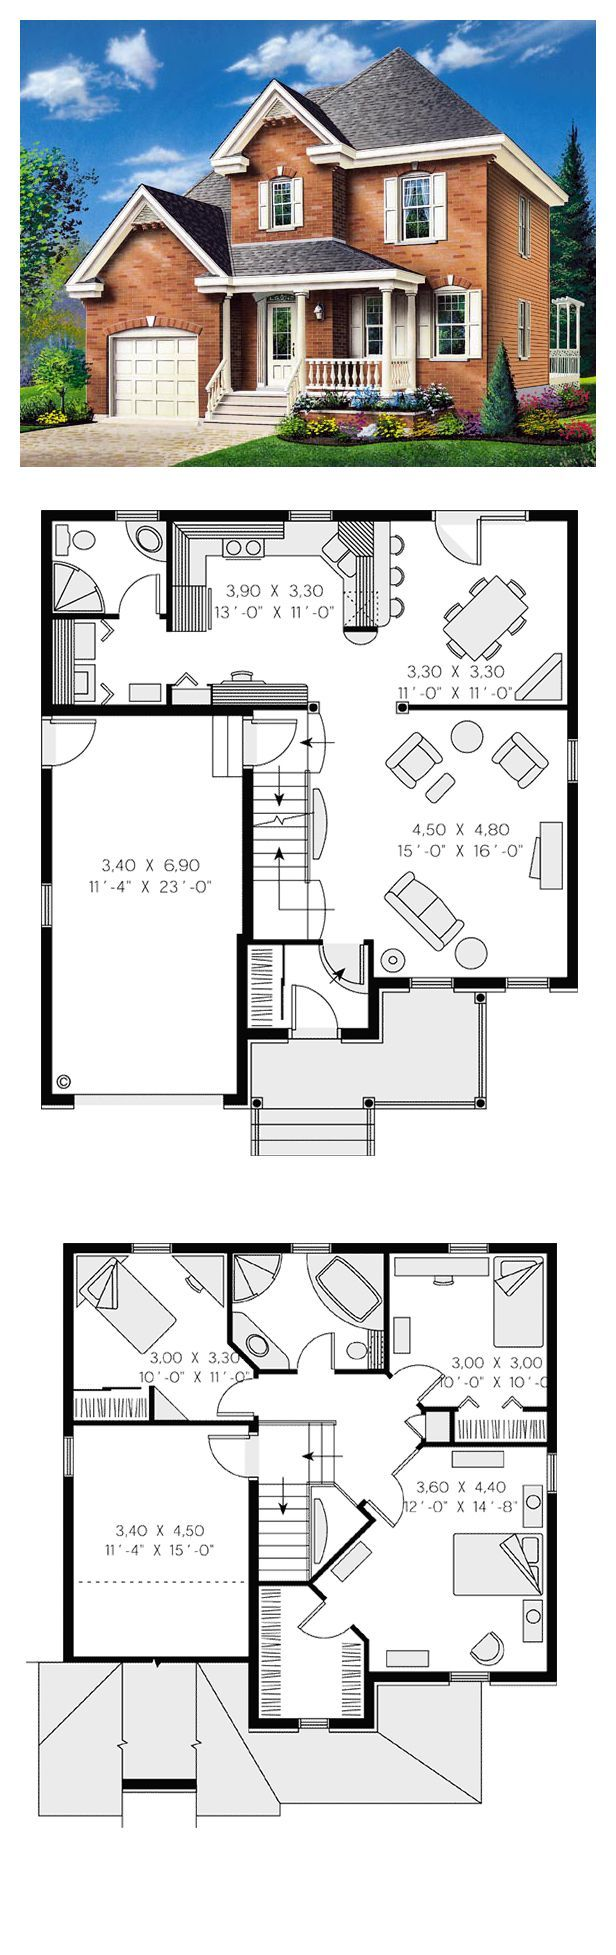 1875 best my floor plans images on pinterest Above all house plans